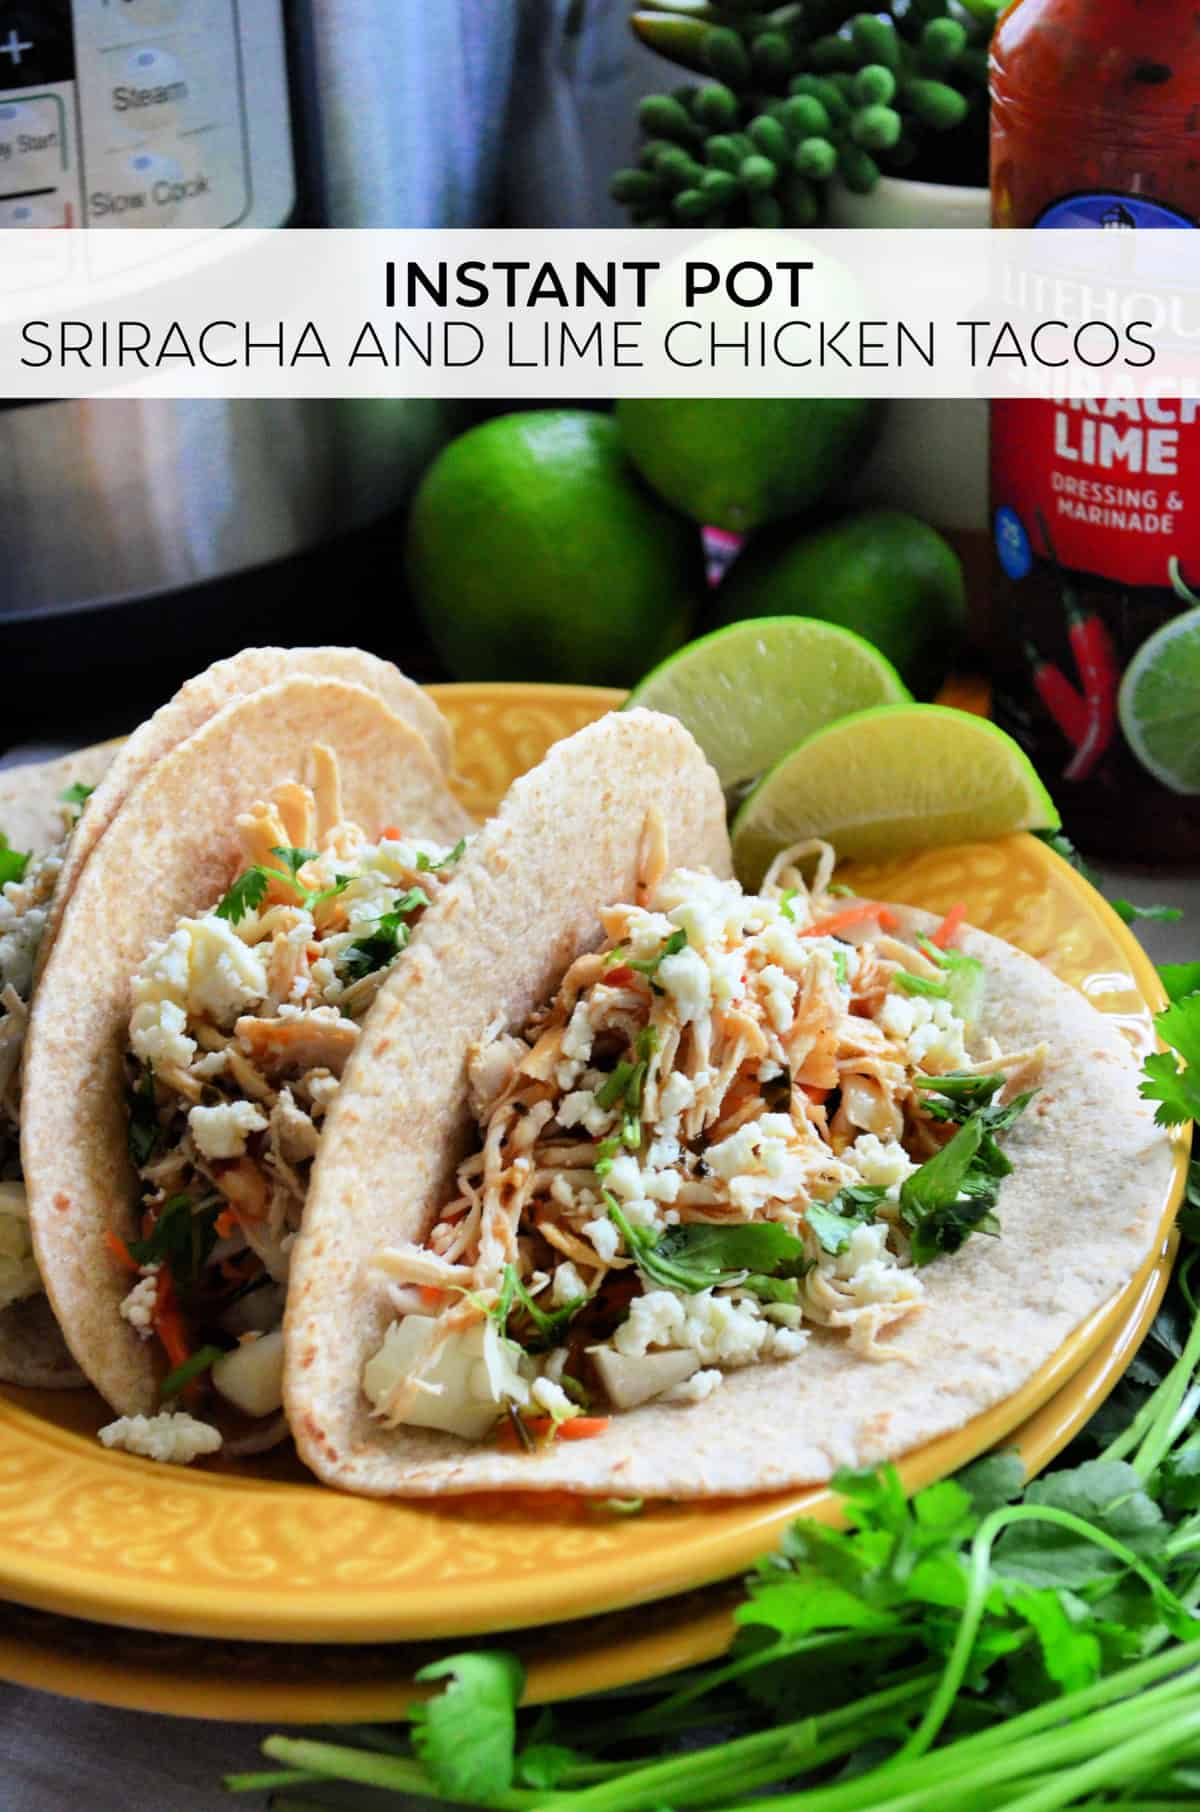 Instant Pot Sriracha and Lime Chicken Tacos